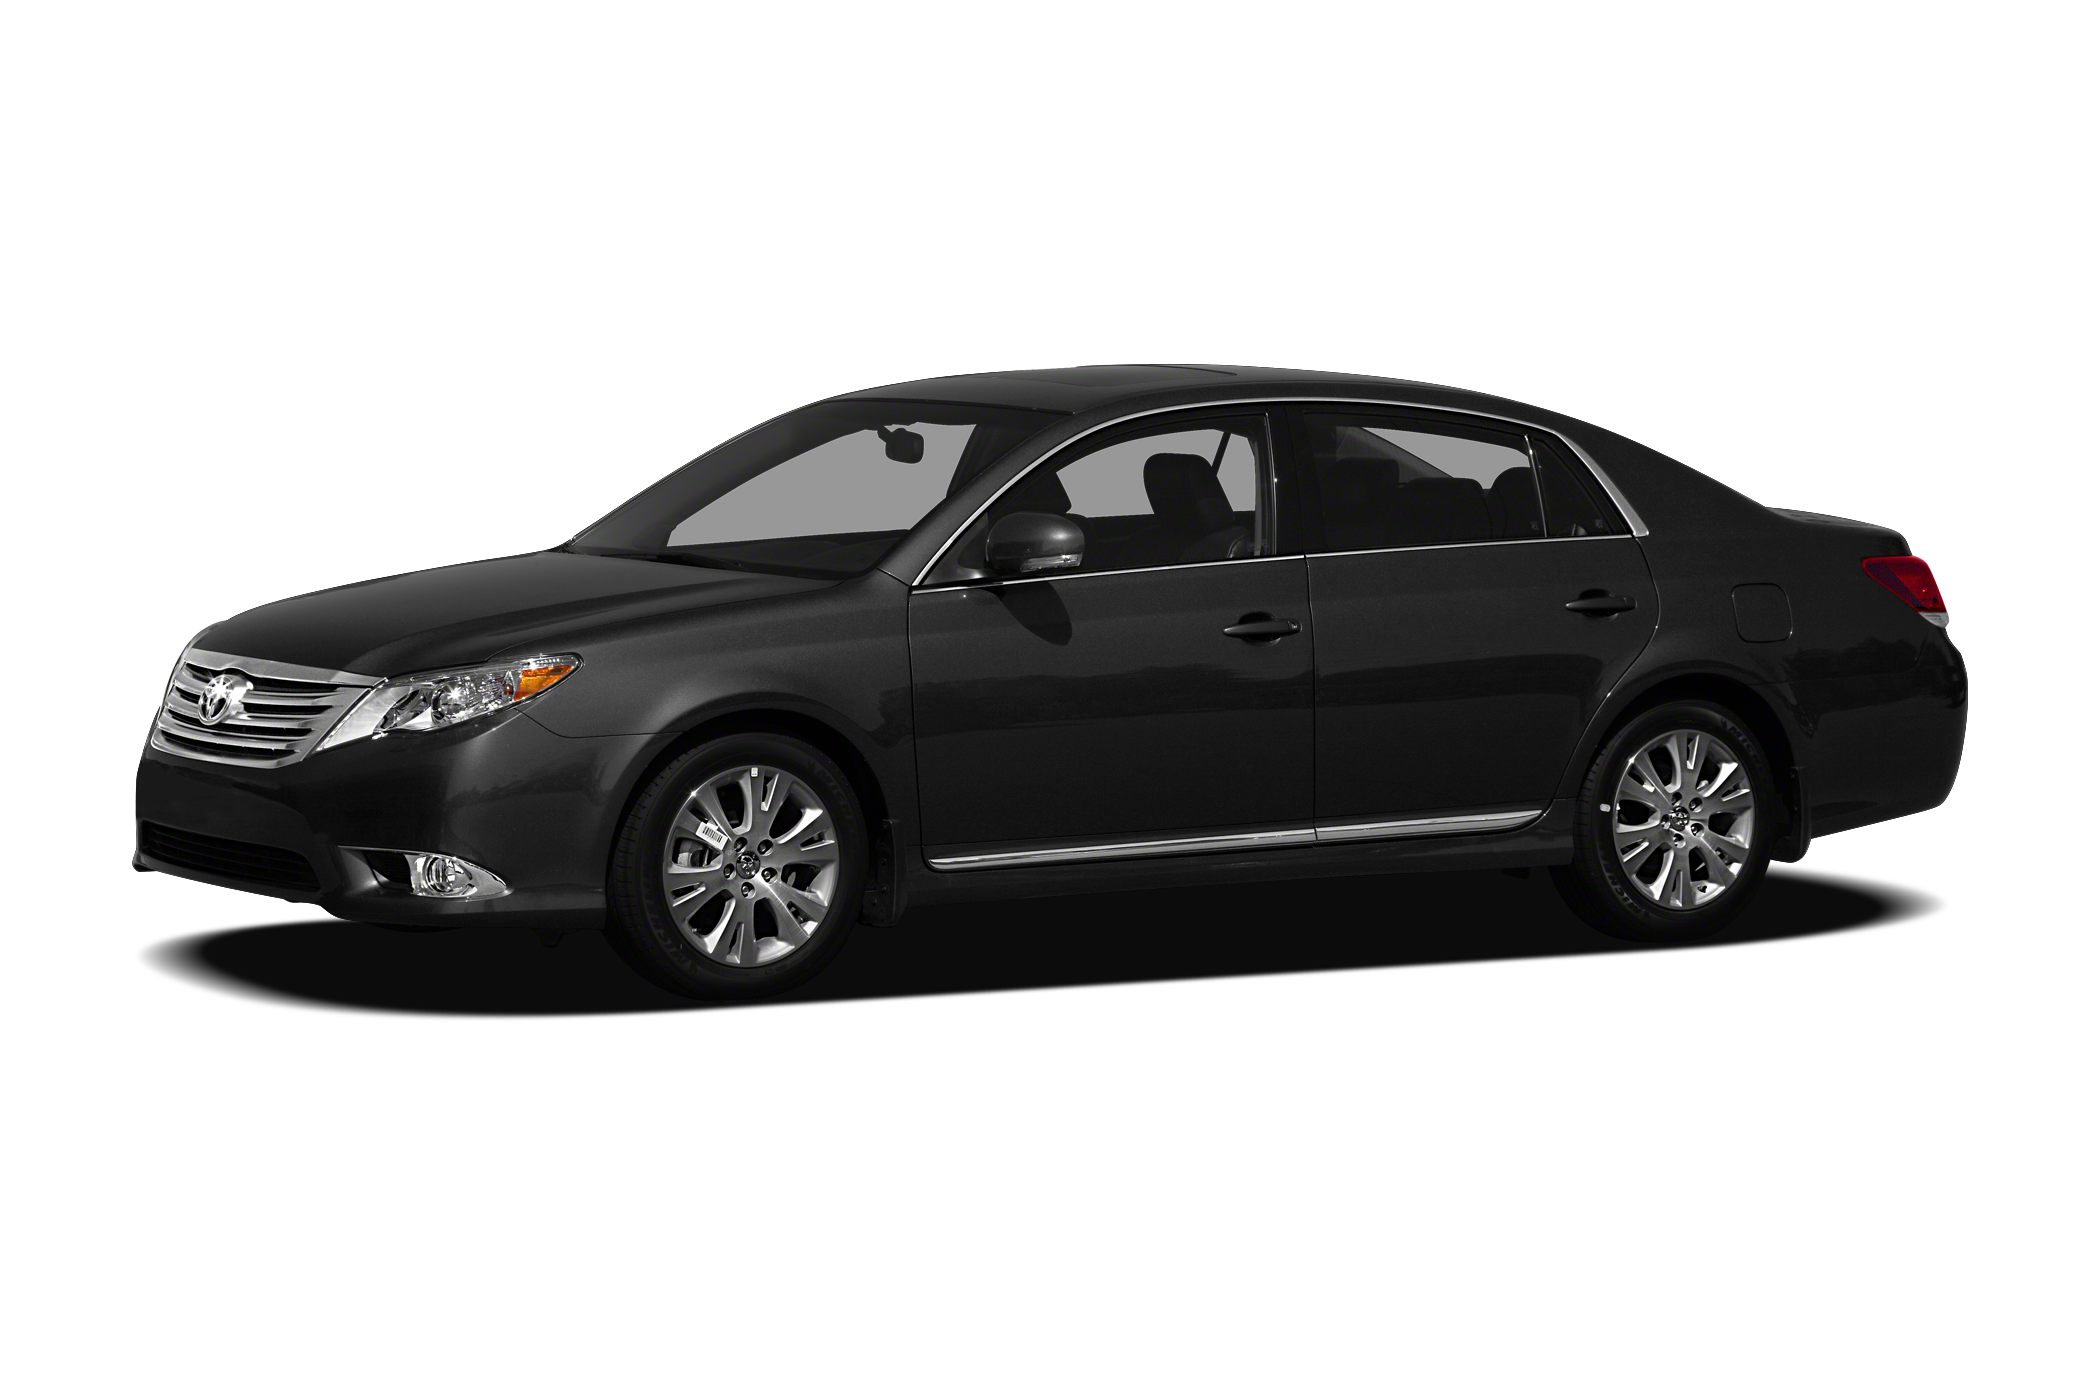 2012 Toyota Avalon Limited CARFAX 1-Owner ONLY 27330 Miles PRICED TO MOVE 200 below Kelley Blu